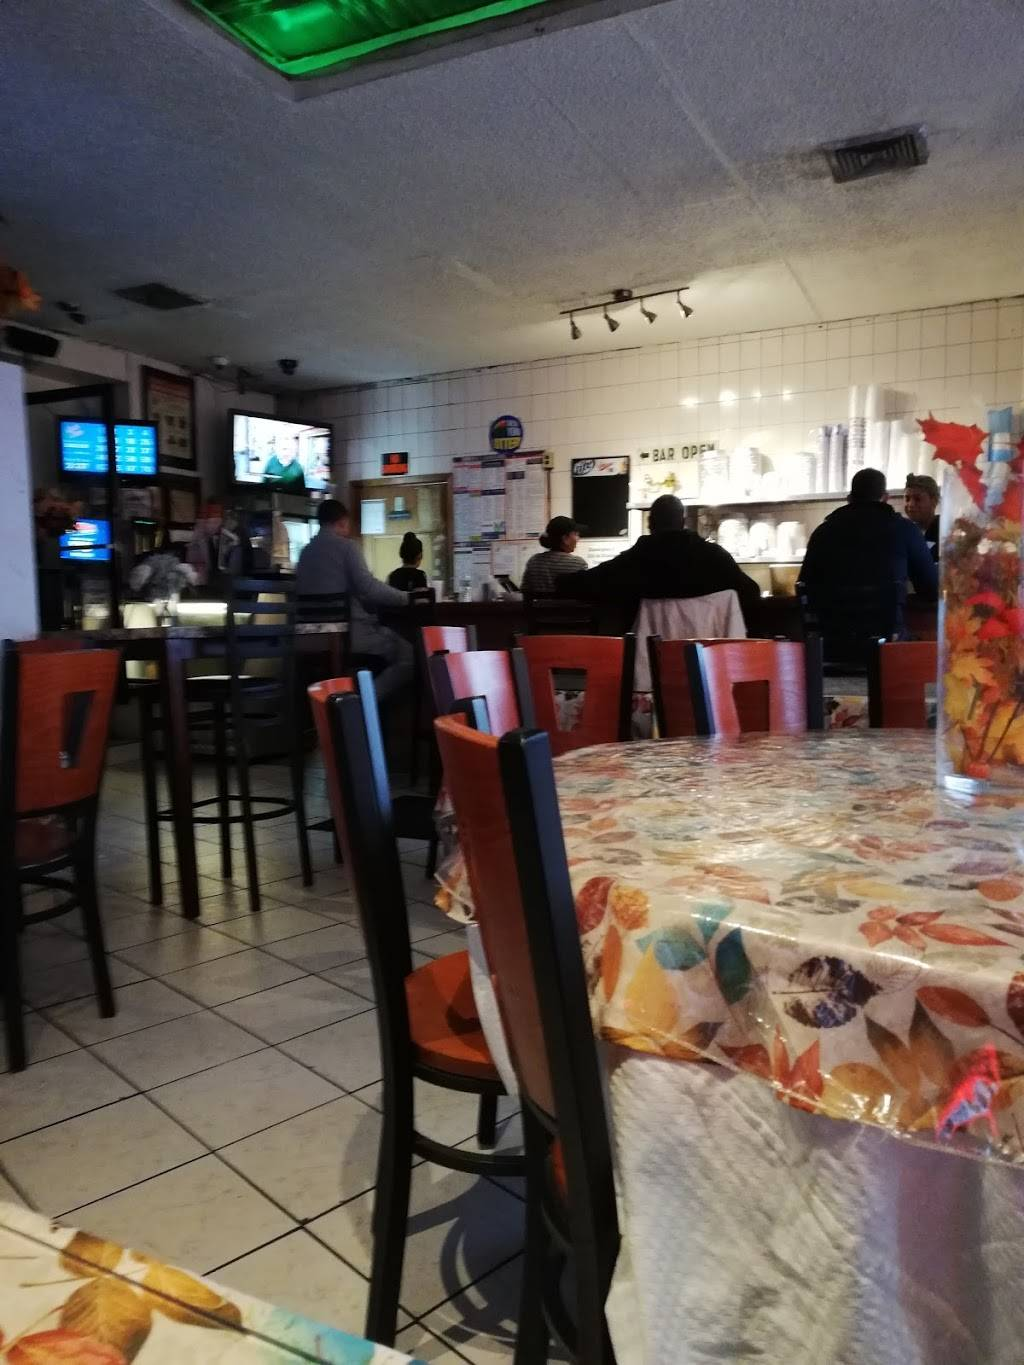 Fiesta Cafe and Bar | cafe | 4640 3rd Ave, Bronx, NY 10458, USA | 7187332211 OR +1 718-733-2211